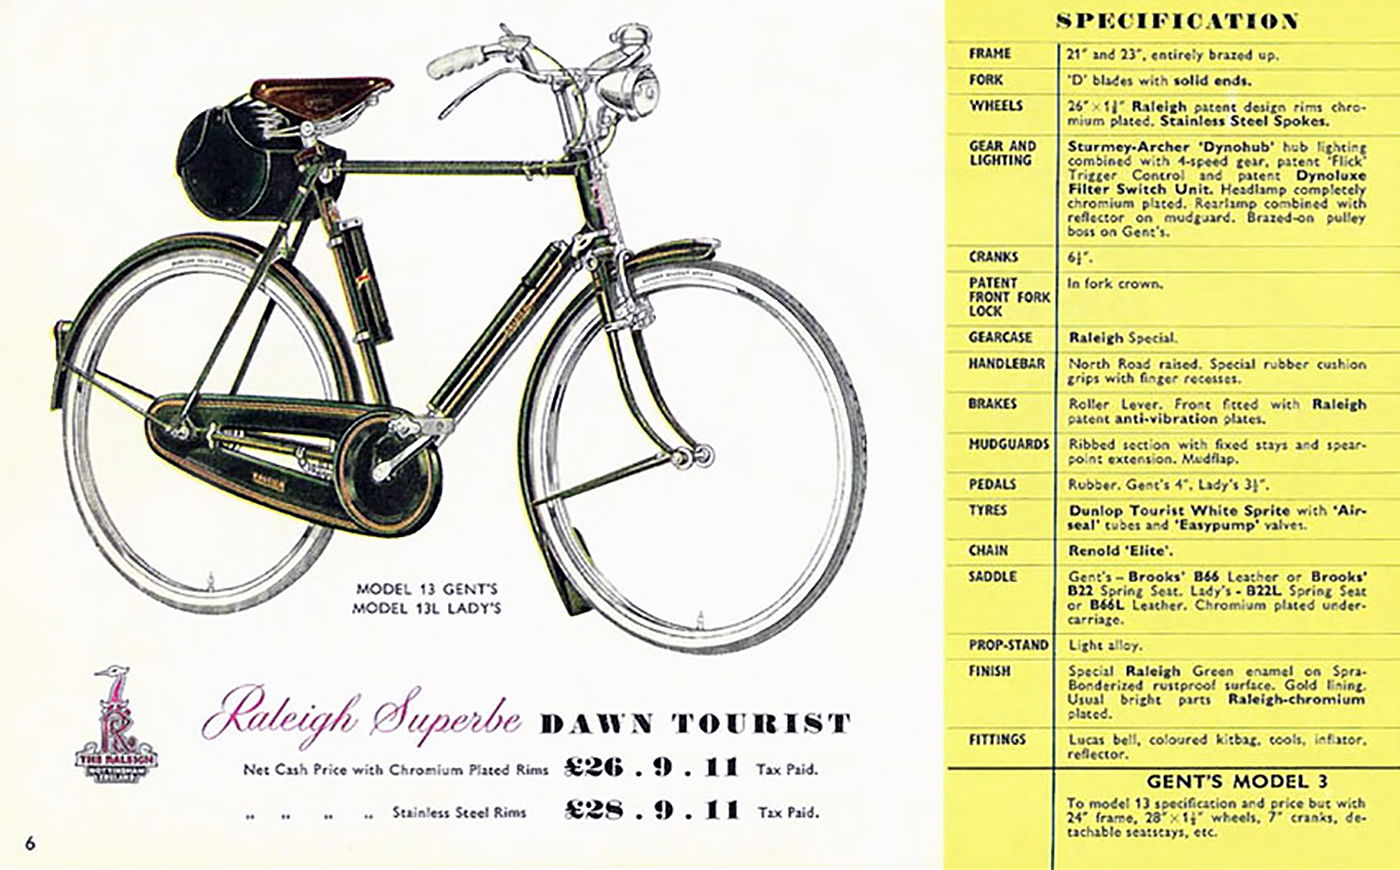 ebykr-1959-raleigh-superbe-dawn-tourist-advertisement